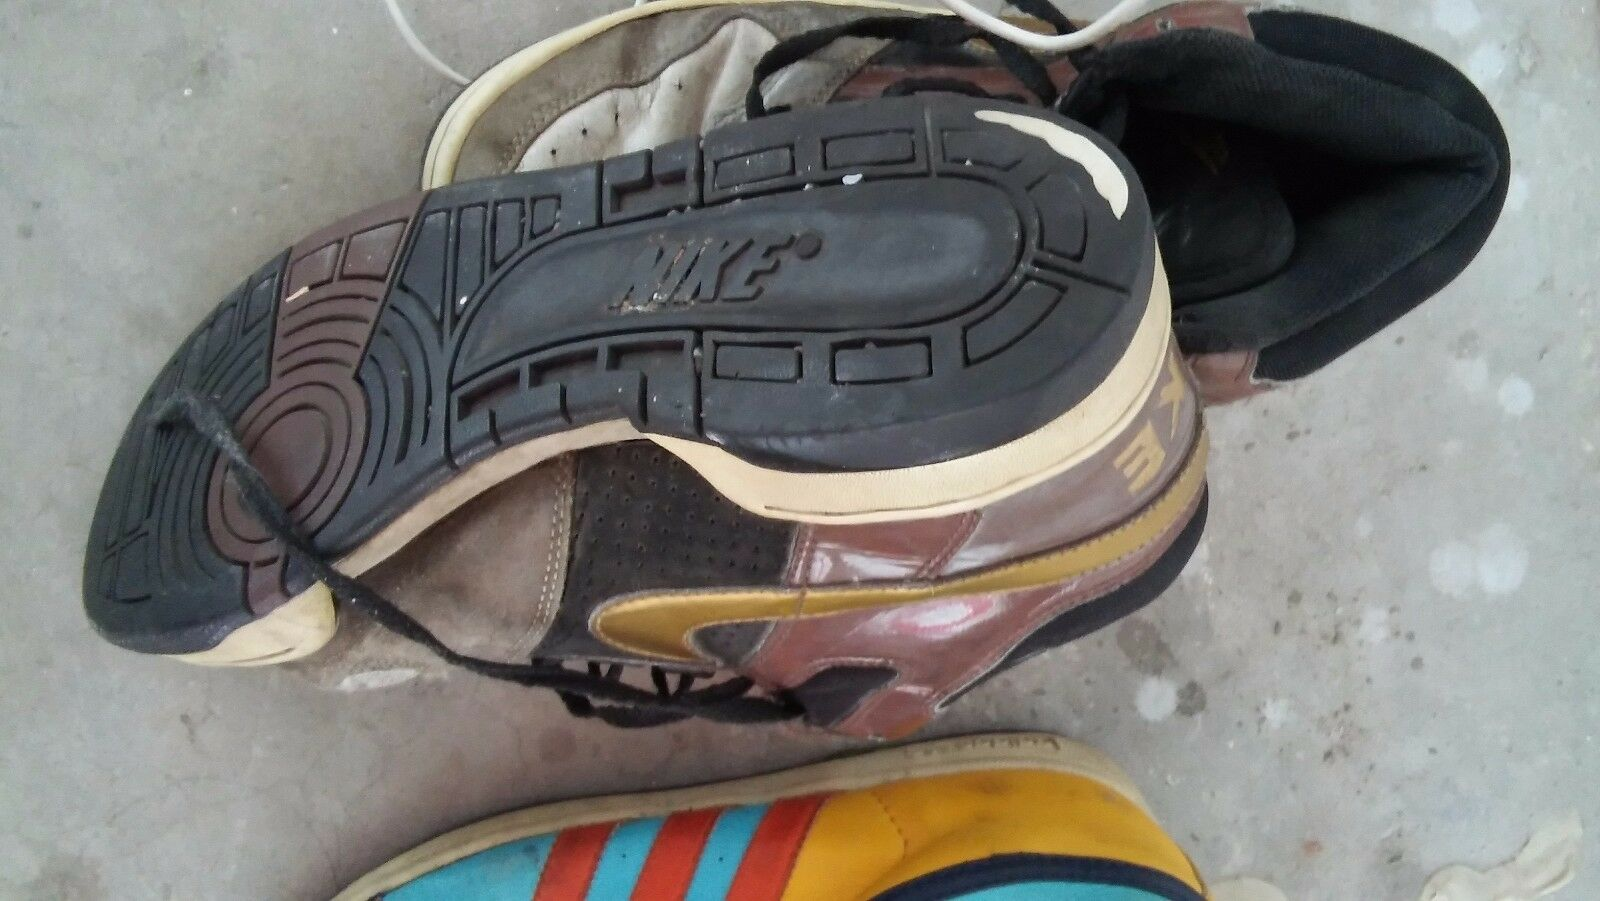 Wild casual shoes nike pre owned decent among wear but good dunks ostrich black gold purple